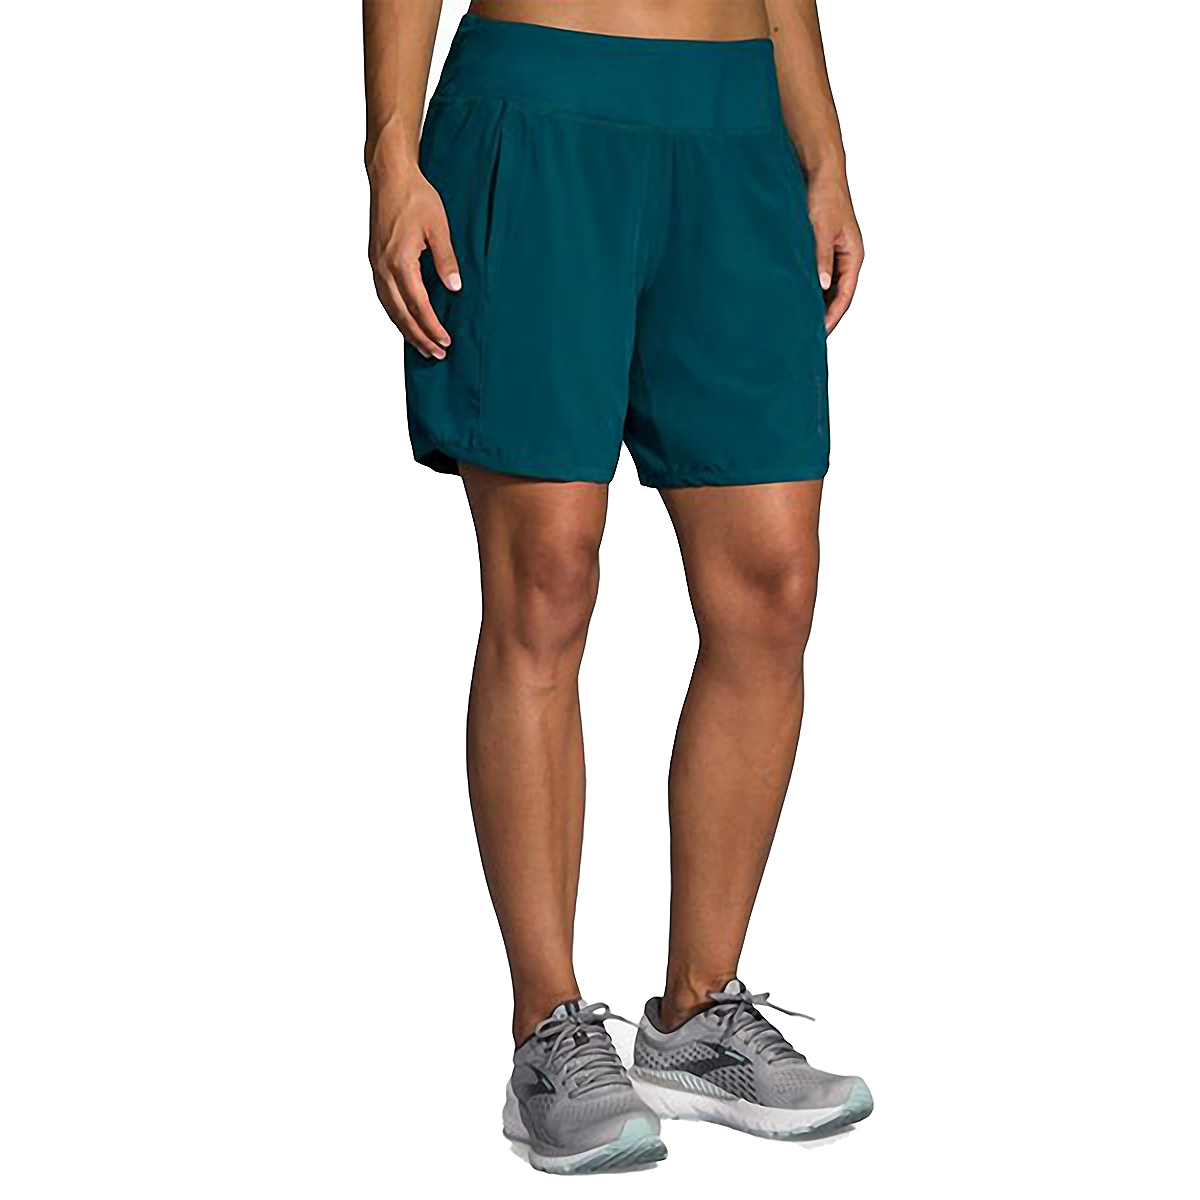 """Women's Brooks Chaser 7"""" Short  - Color: Deep Sea - Size: XS, Deep Sea, large, image 1"""